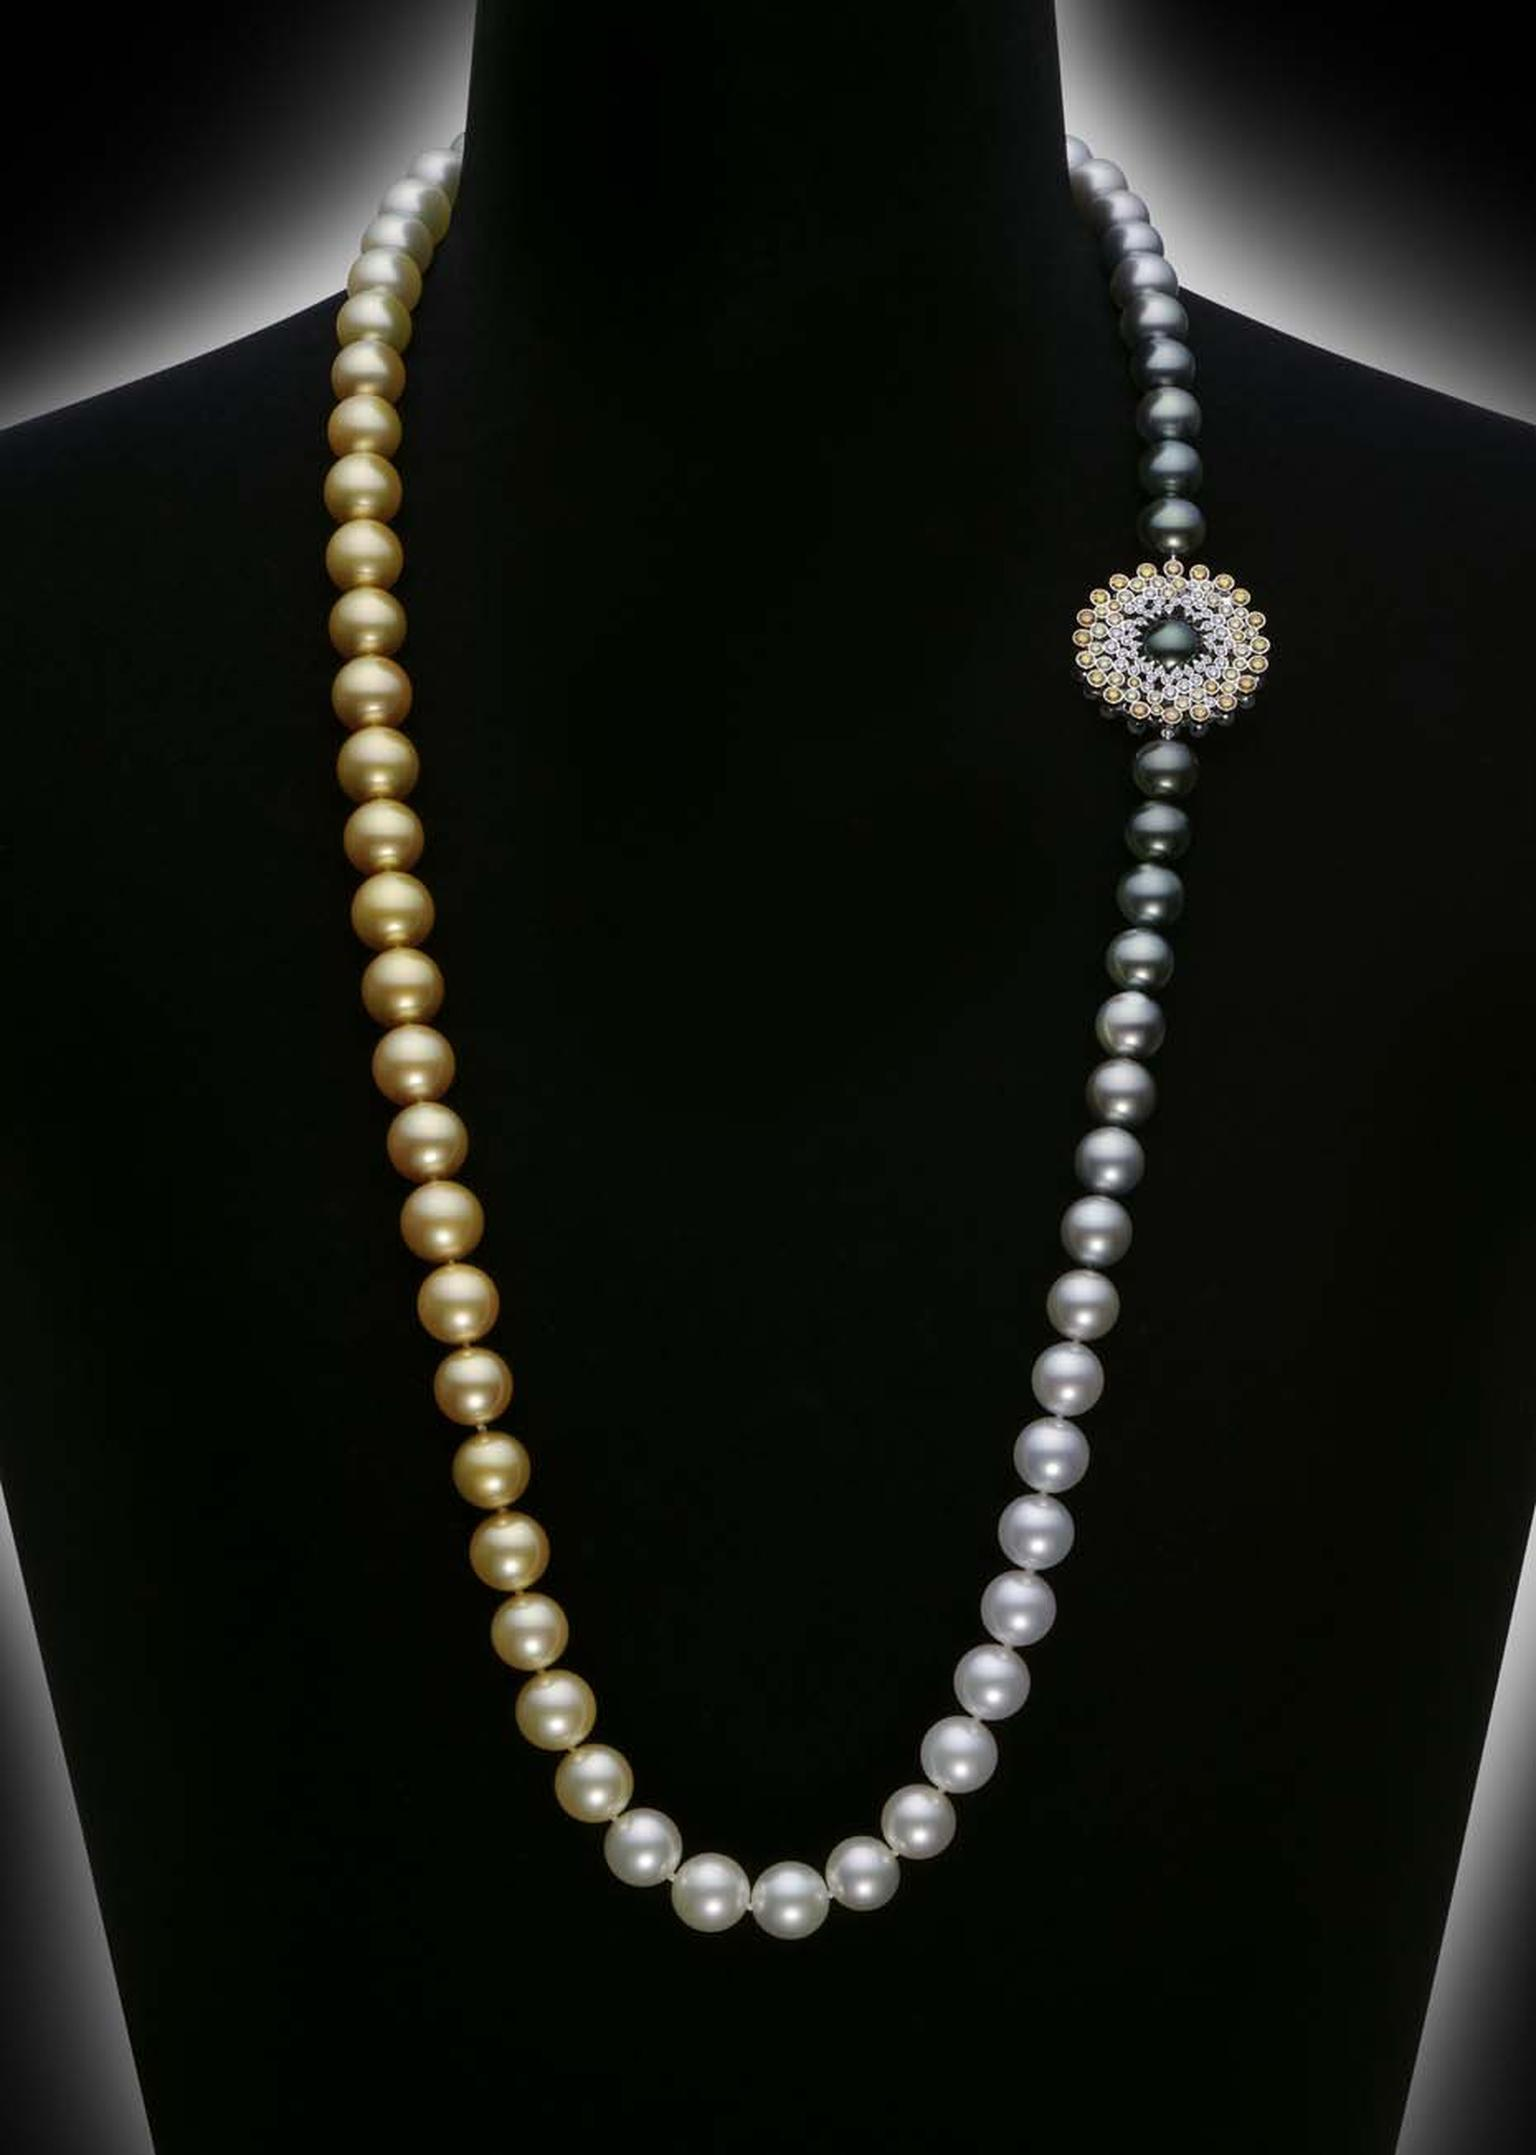 Mikimoto's Sun & Clouds pearl necklace will be revealed exclusively at Baselworld 2014 with a pair of matching Sun & Clouds earrings